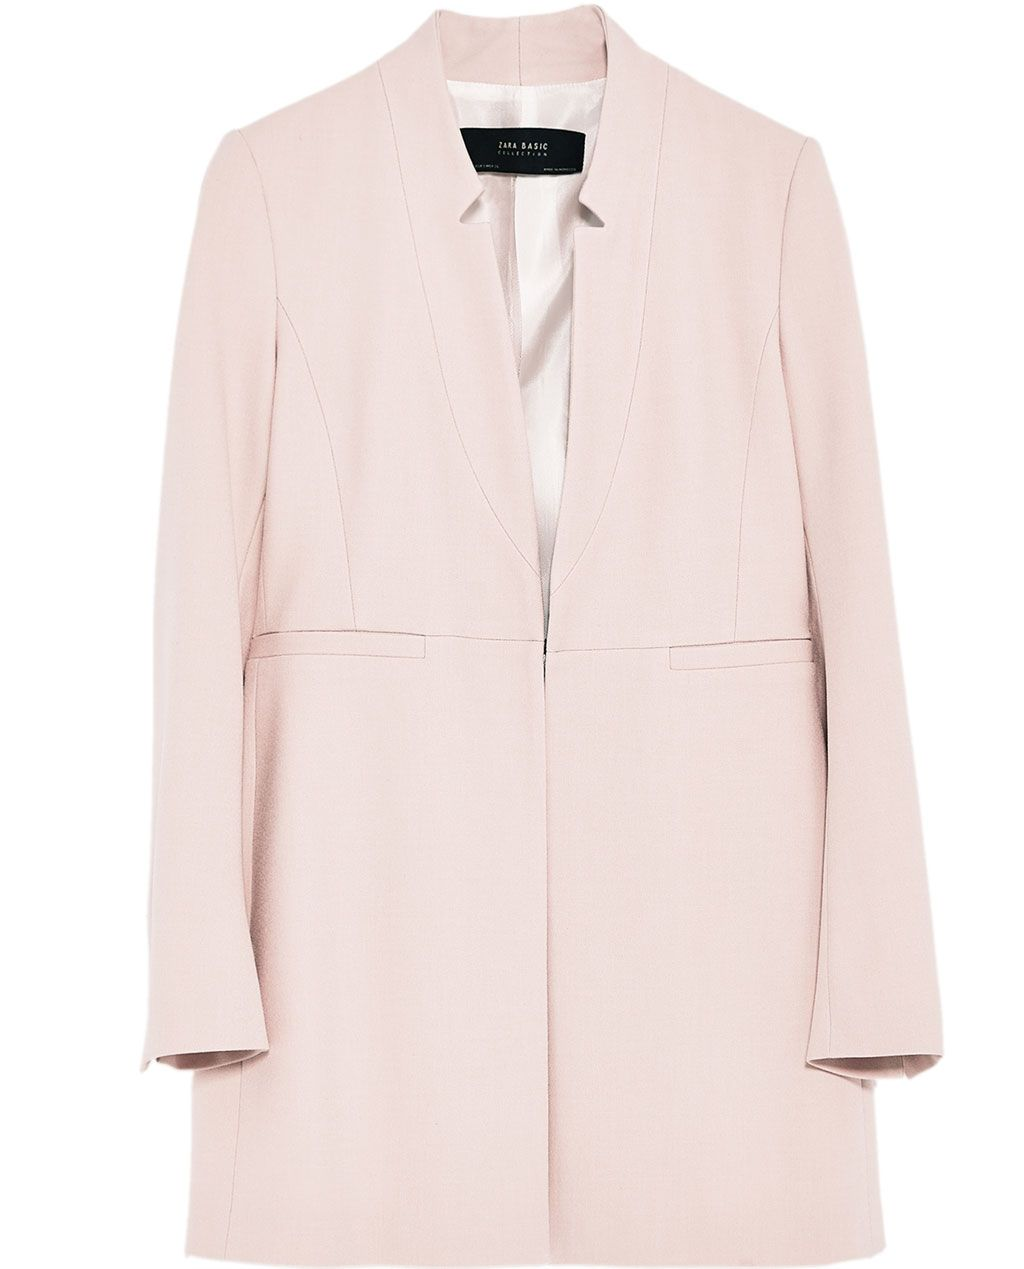 e8c370c898 INVERTED LAPEL FROCK COAT-View All-OUTERWEAR-WOMAN | ZARA Canada ...